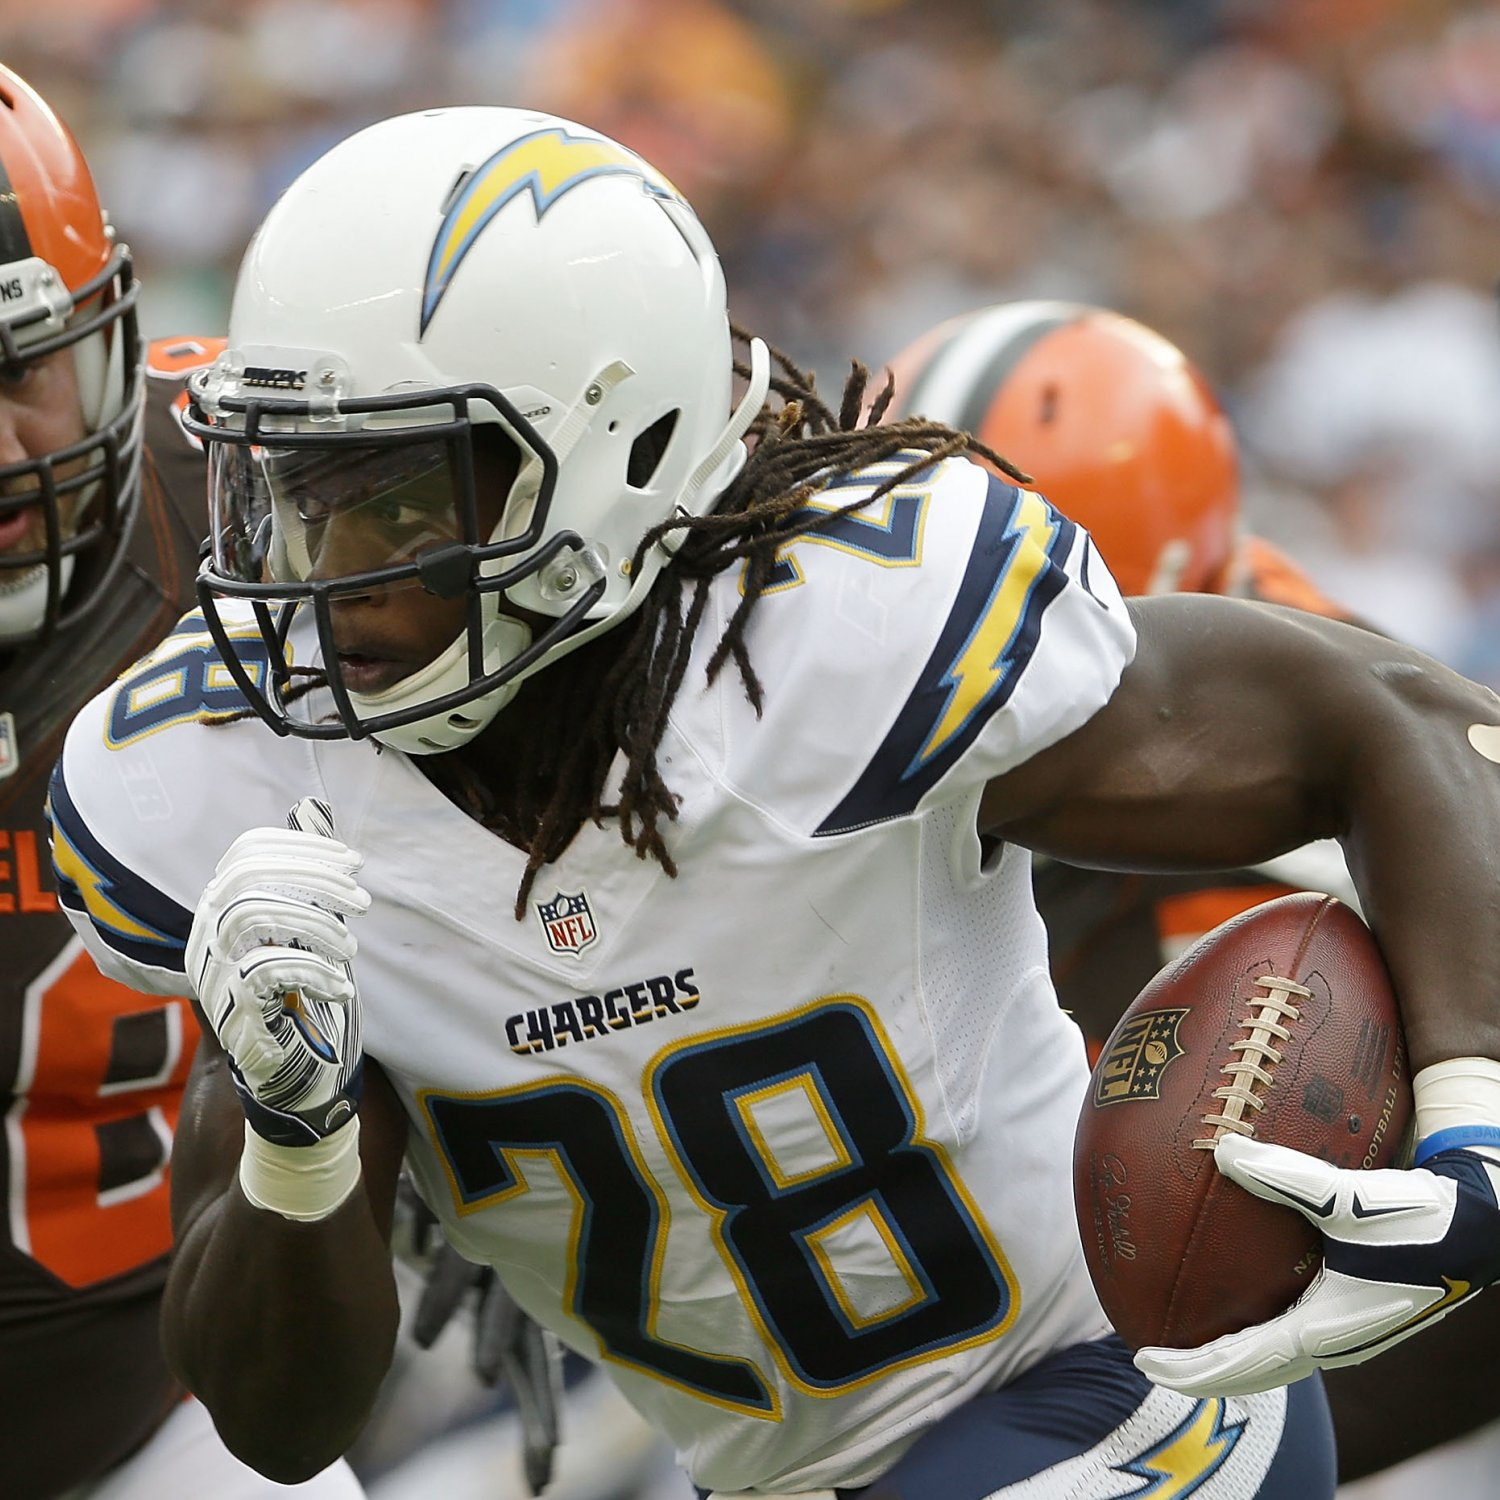 San Diego Chargers Broadcast: Cleveland Browns Vs. San Diego Chargers: Video Highlights